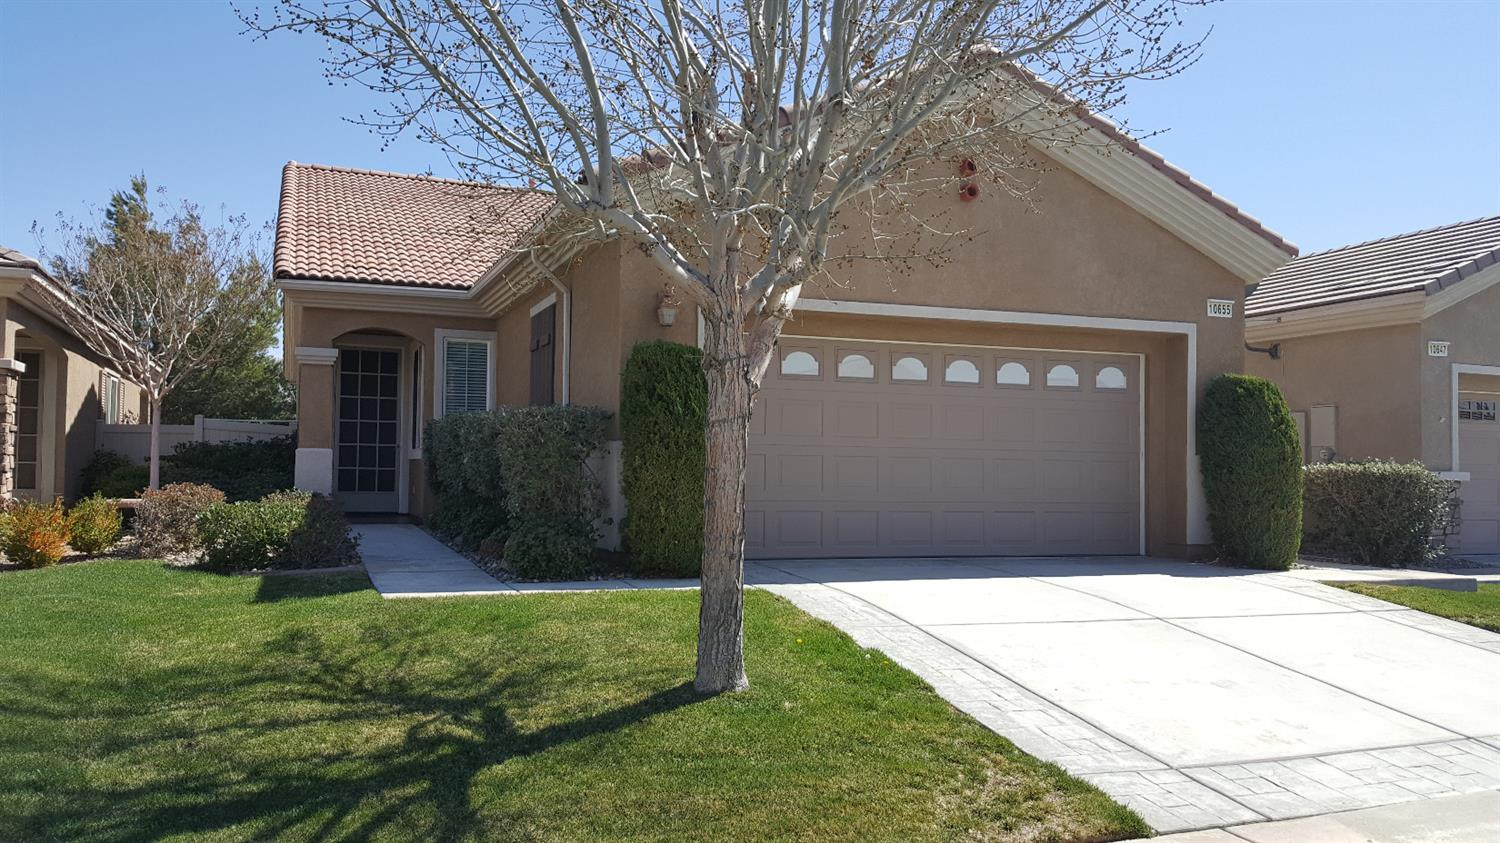 All homes for sale 55places 10655 bridge haven road apple valley ca 92308 malvernweather Choice Image